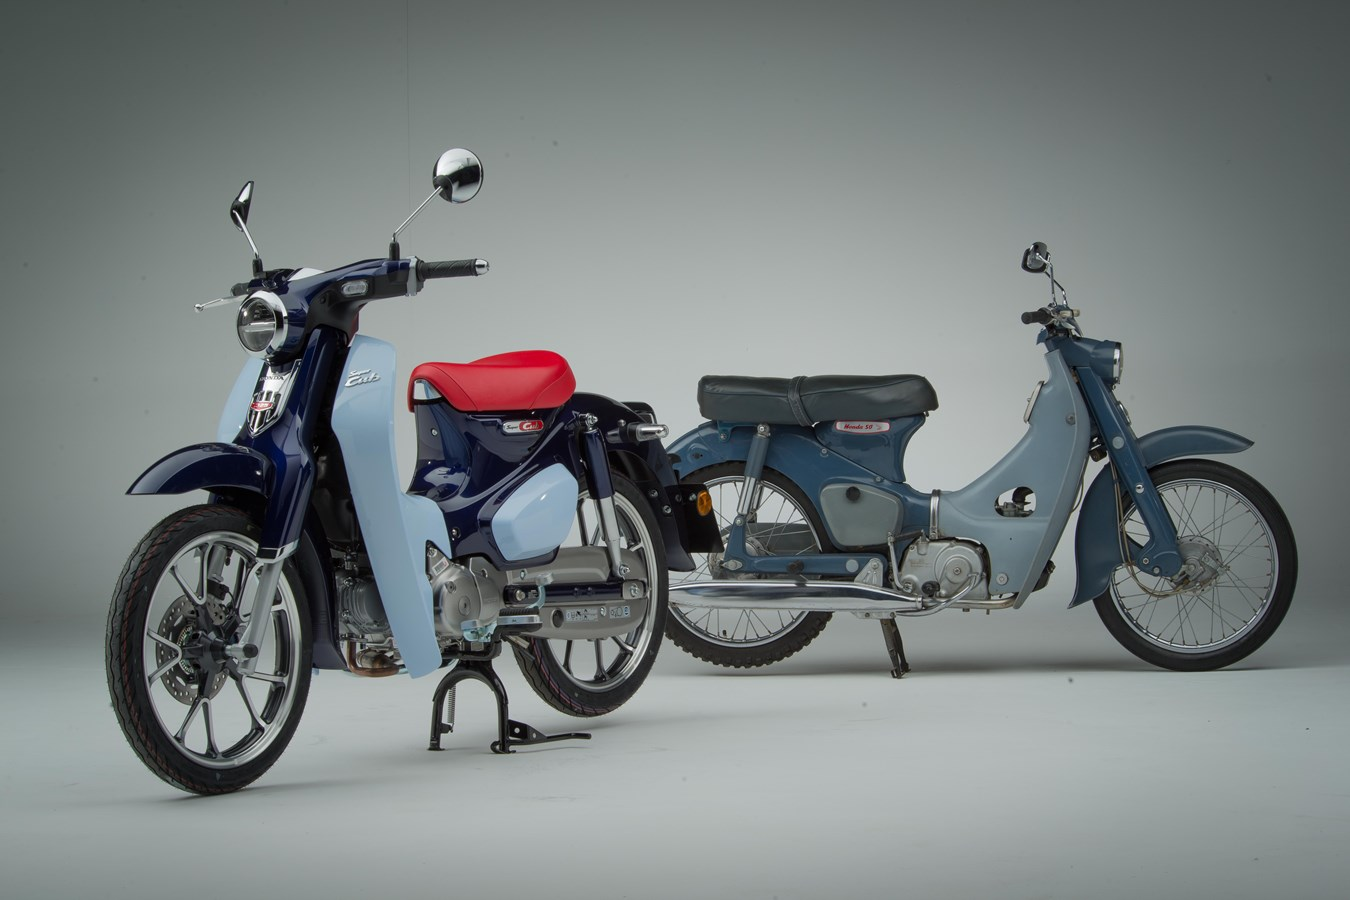 How Did The Honda Super Cub Change Public Perception of Motorcycling?